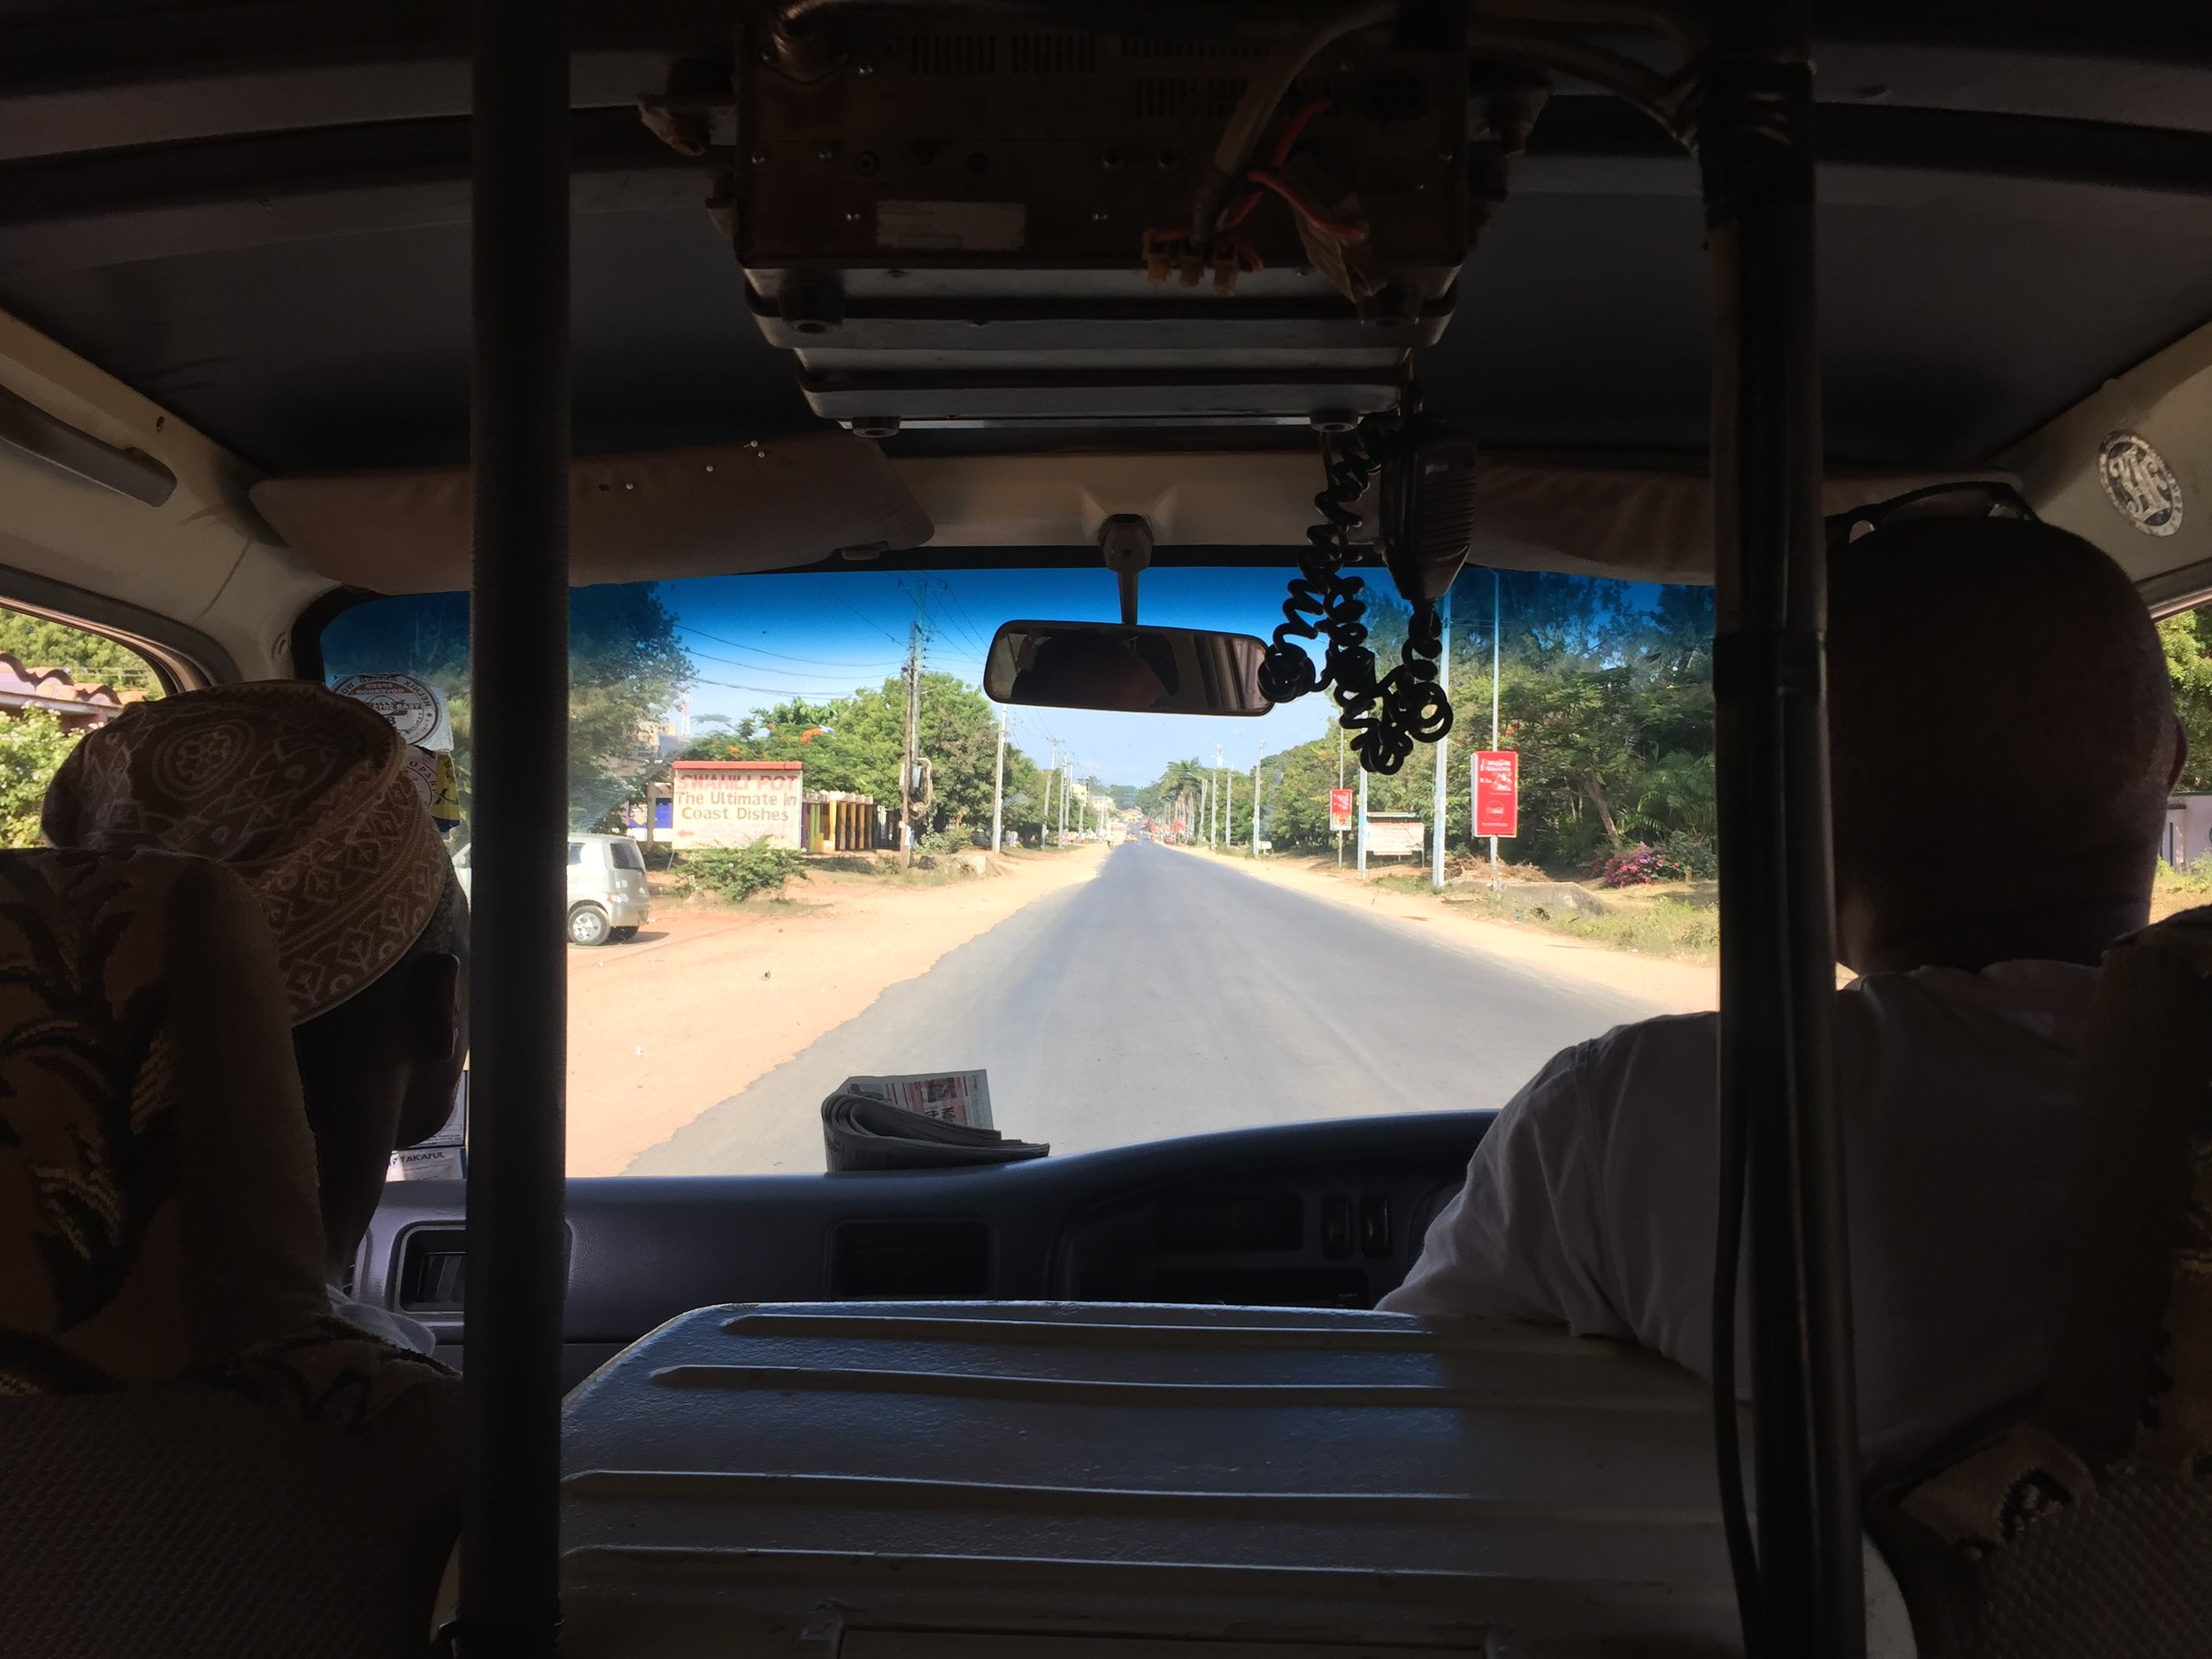 Tuk-tuking back from Safari Beach Gym, which is a real place.